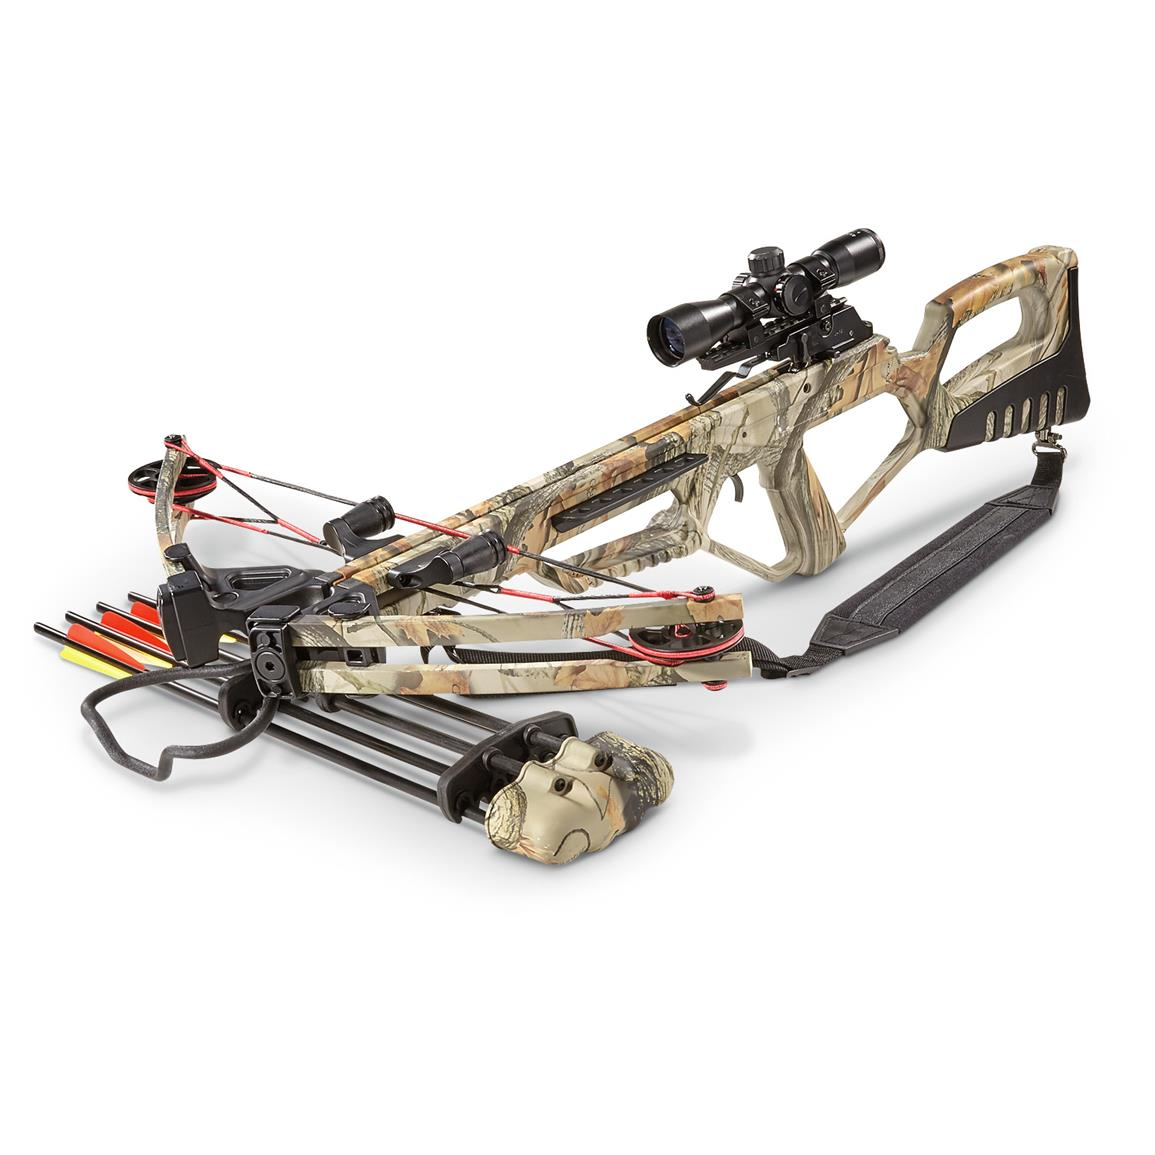 Falcon 370 DX Extreme Crossbow with BONUS Kit